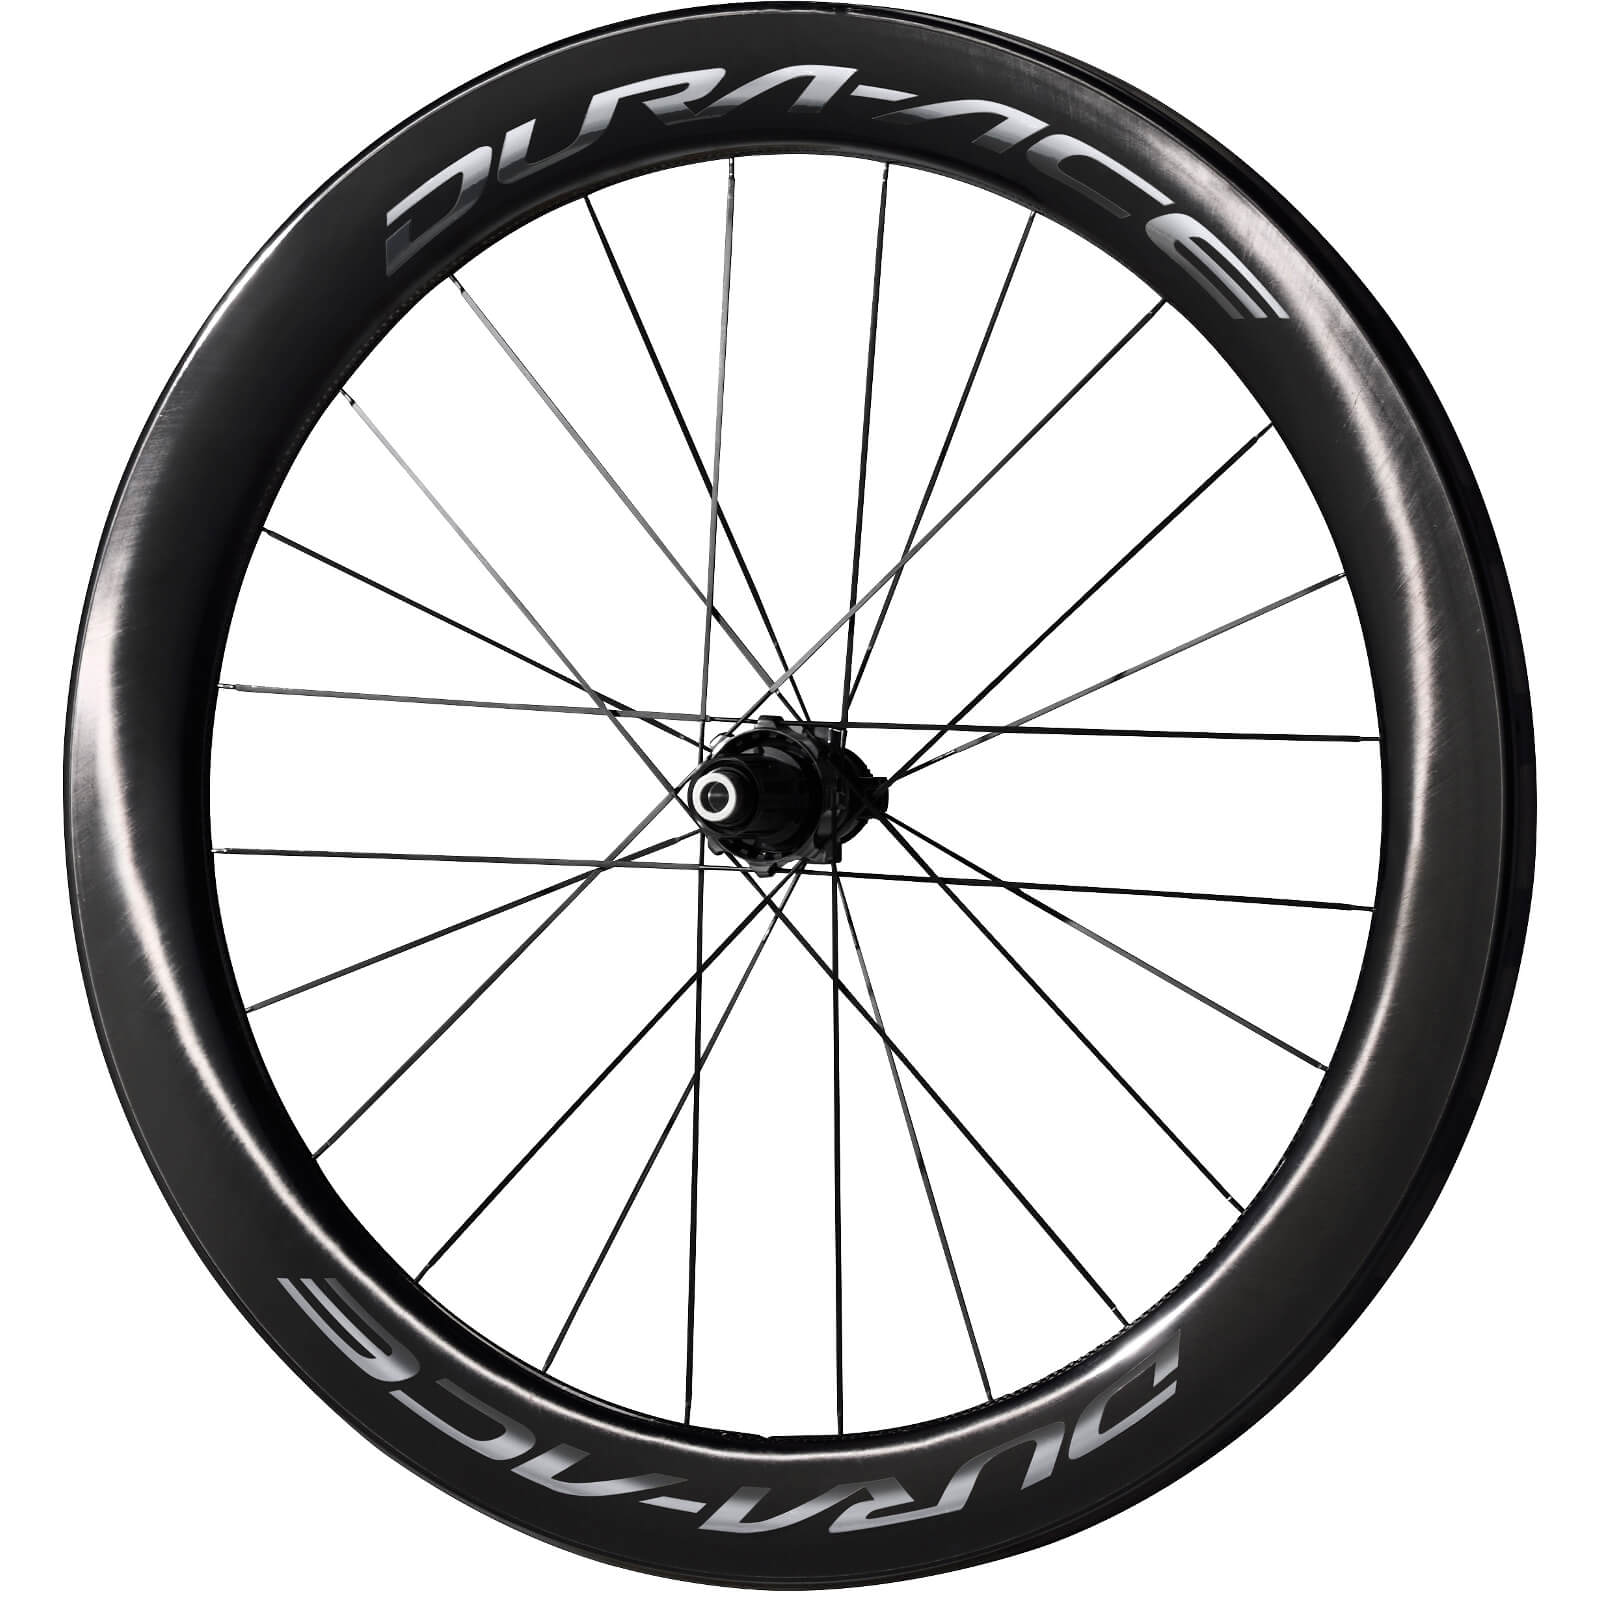 Shimano Dura Ace R9170 C60 Carbon Tubular Rear Wheel - 12 x 142mm Thru Axle - Centre Lock Disc